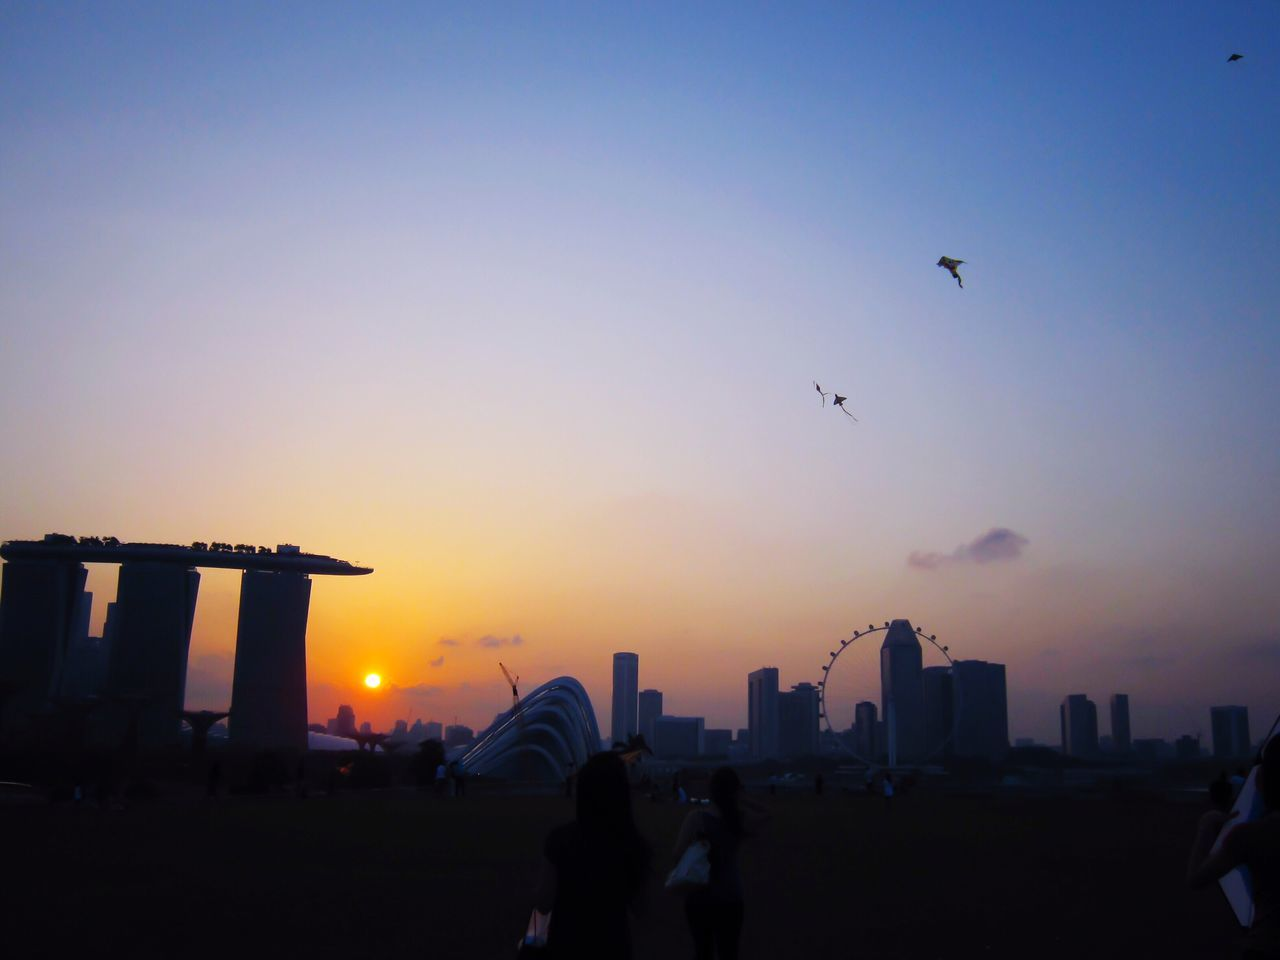 sunset, real people, architecture, built structure, building exterior, city, flying, silhouette, skyscraper, sky, bird, outdoors, leisure activity, cityscape, men, city life, clear sky, women, travel destinations, large group of people, urban skyline, lifestyles, animals in the wild, togetherness, nature, day, people